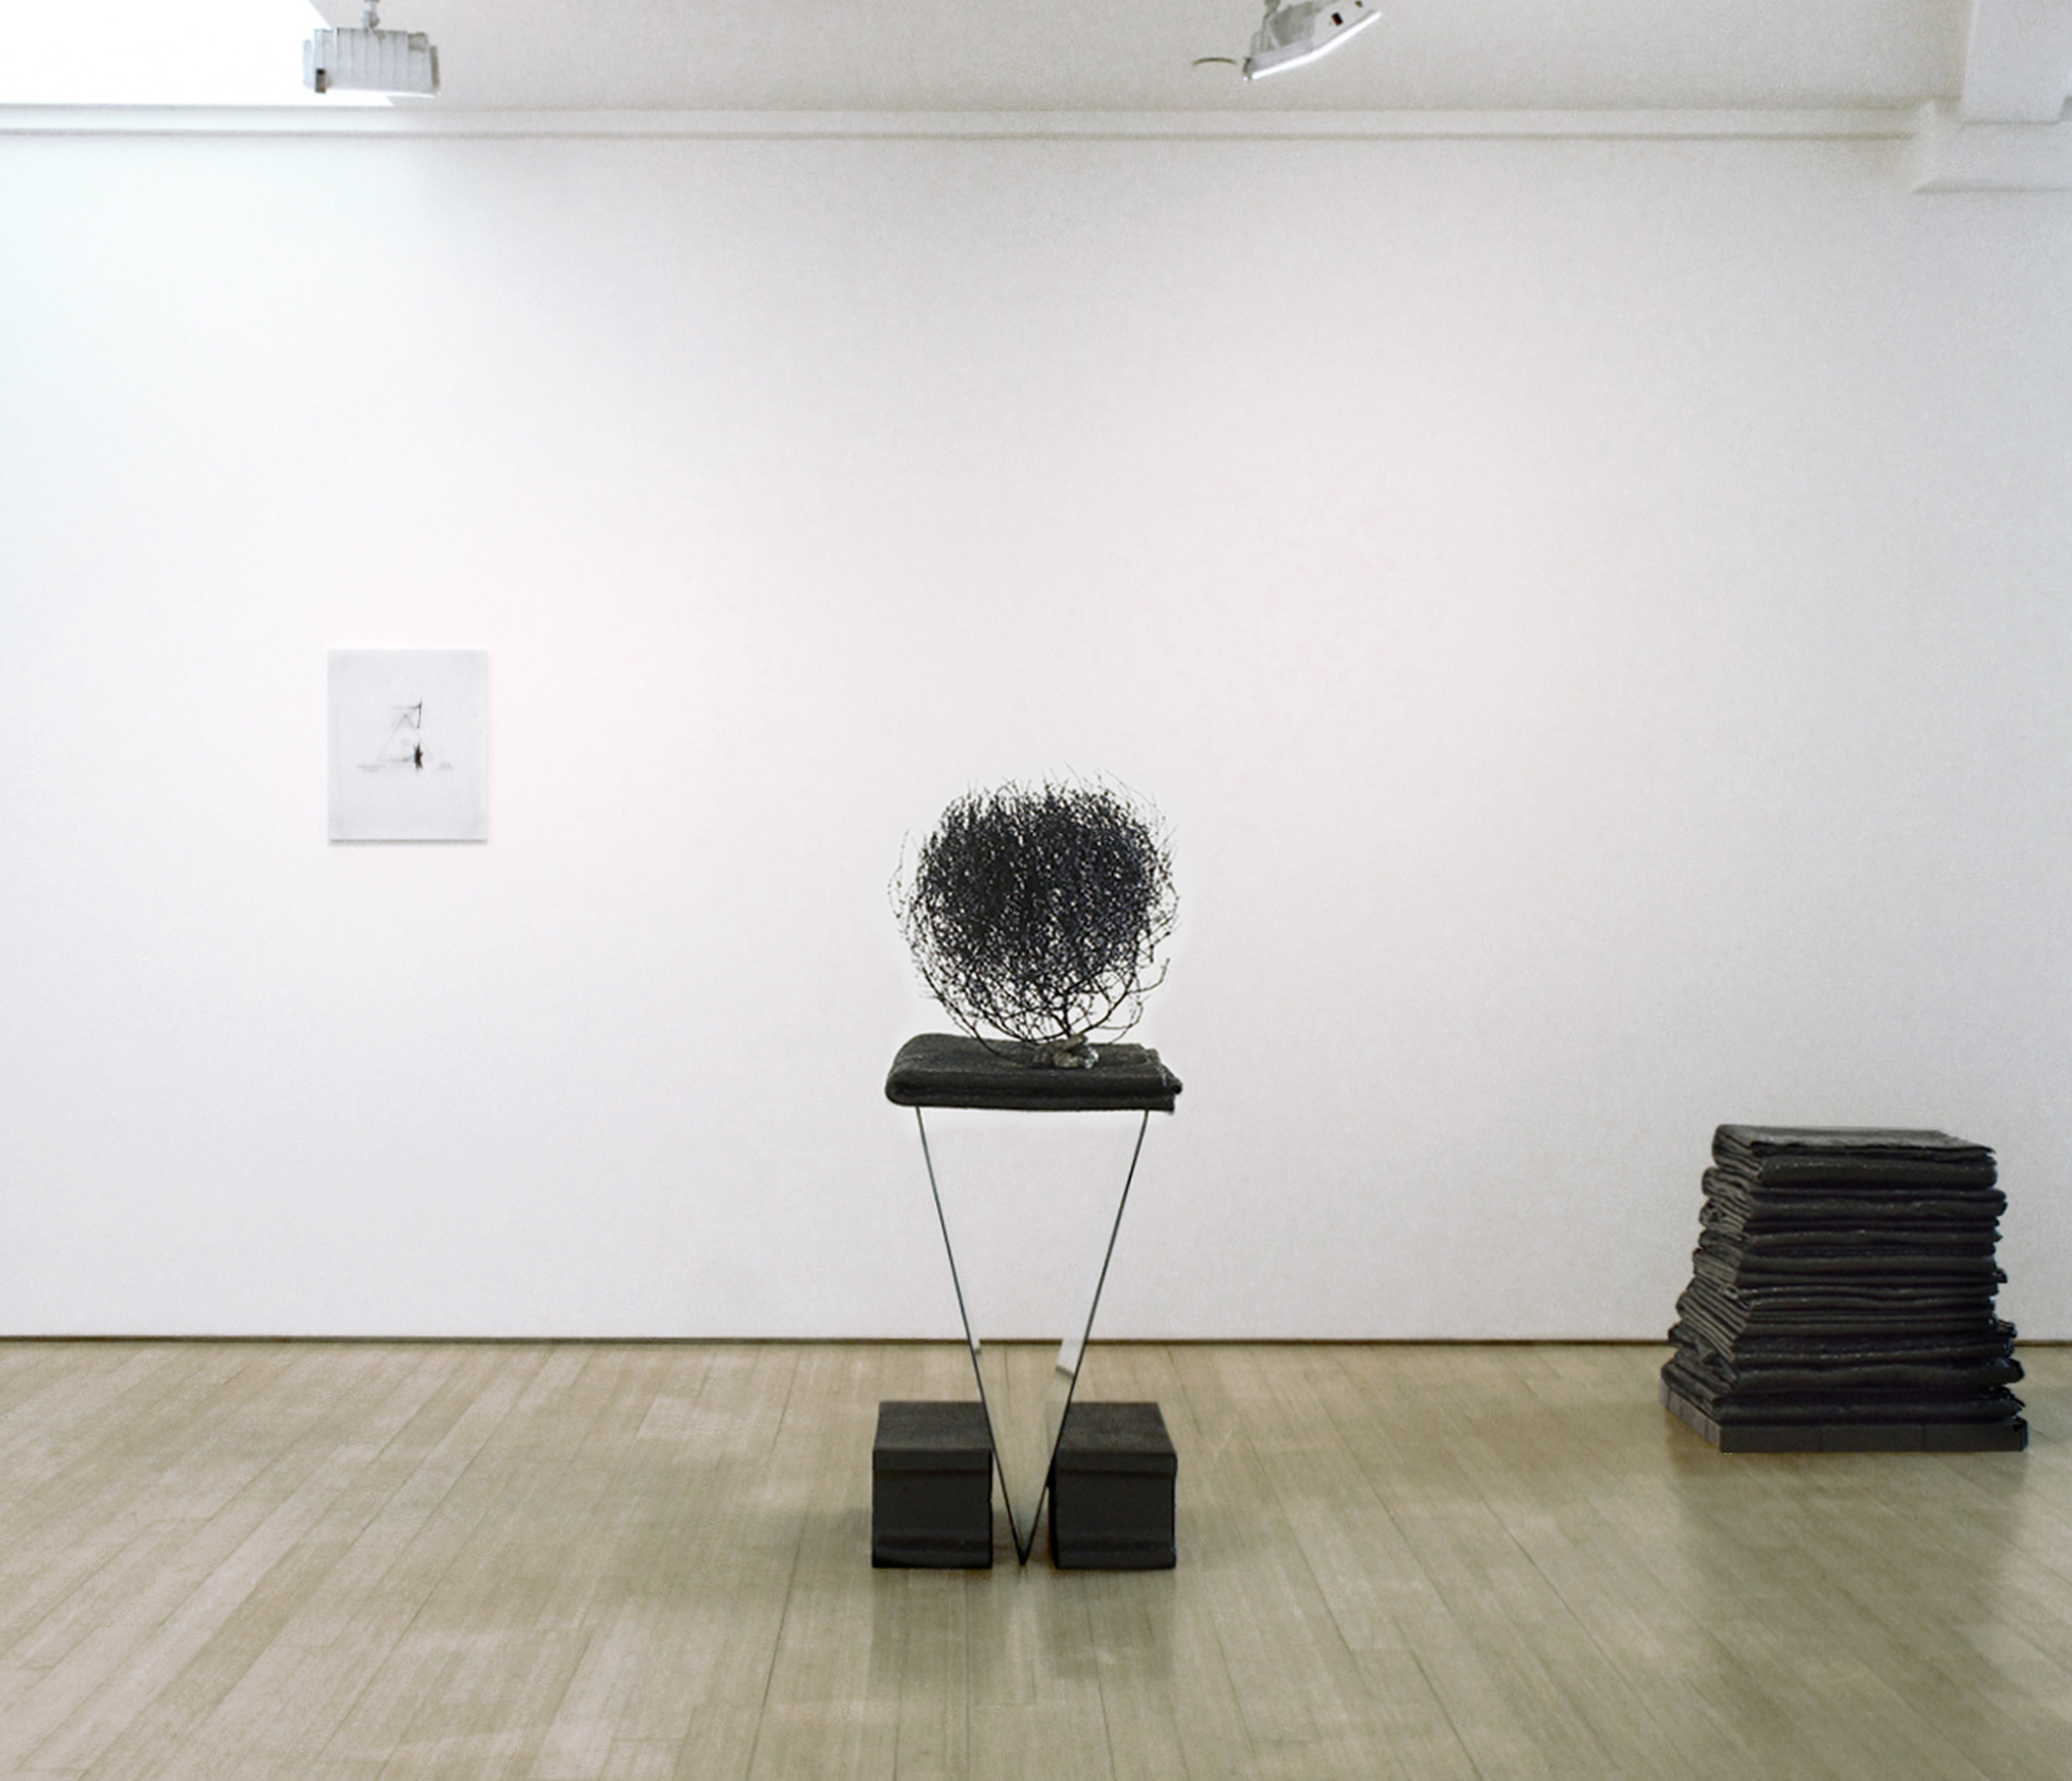 """installation view, """"Maybe I am just a revisionist,"""" at Sgorbati Projects, curated by Seth Sgorbati, 2014"""